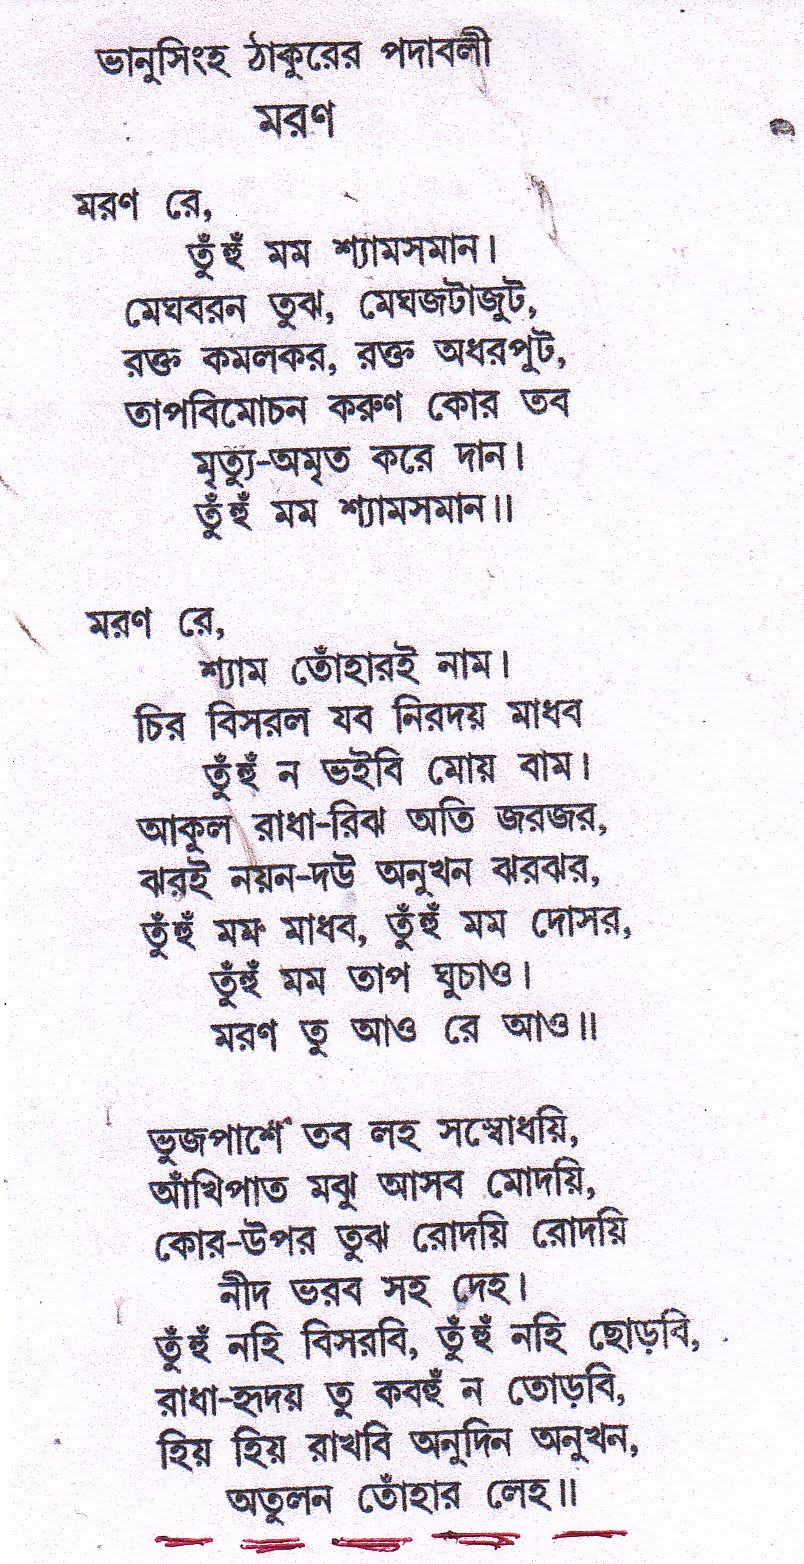 smaraka grantha rabindranath as a poet bhanu singha contd 1 help was taken from the essay written by sushil roy in jiban smriti in 1874 he completed a long poem in the maithili style pioneered by vidyapati